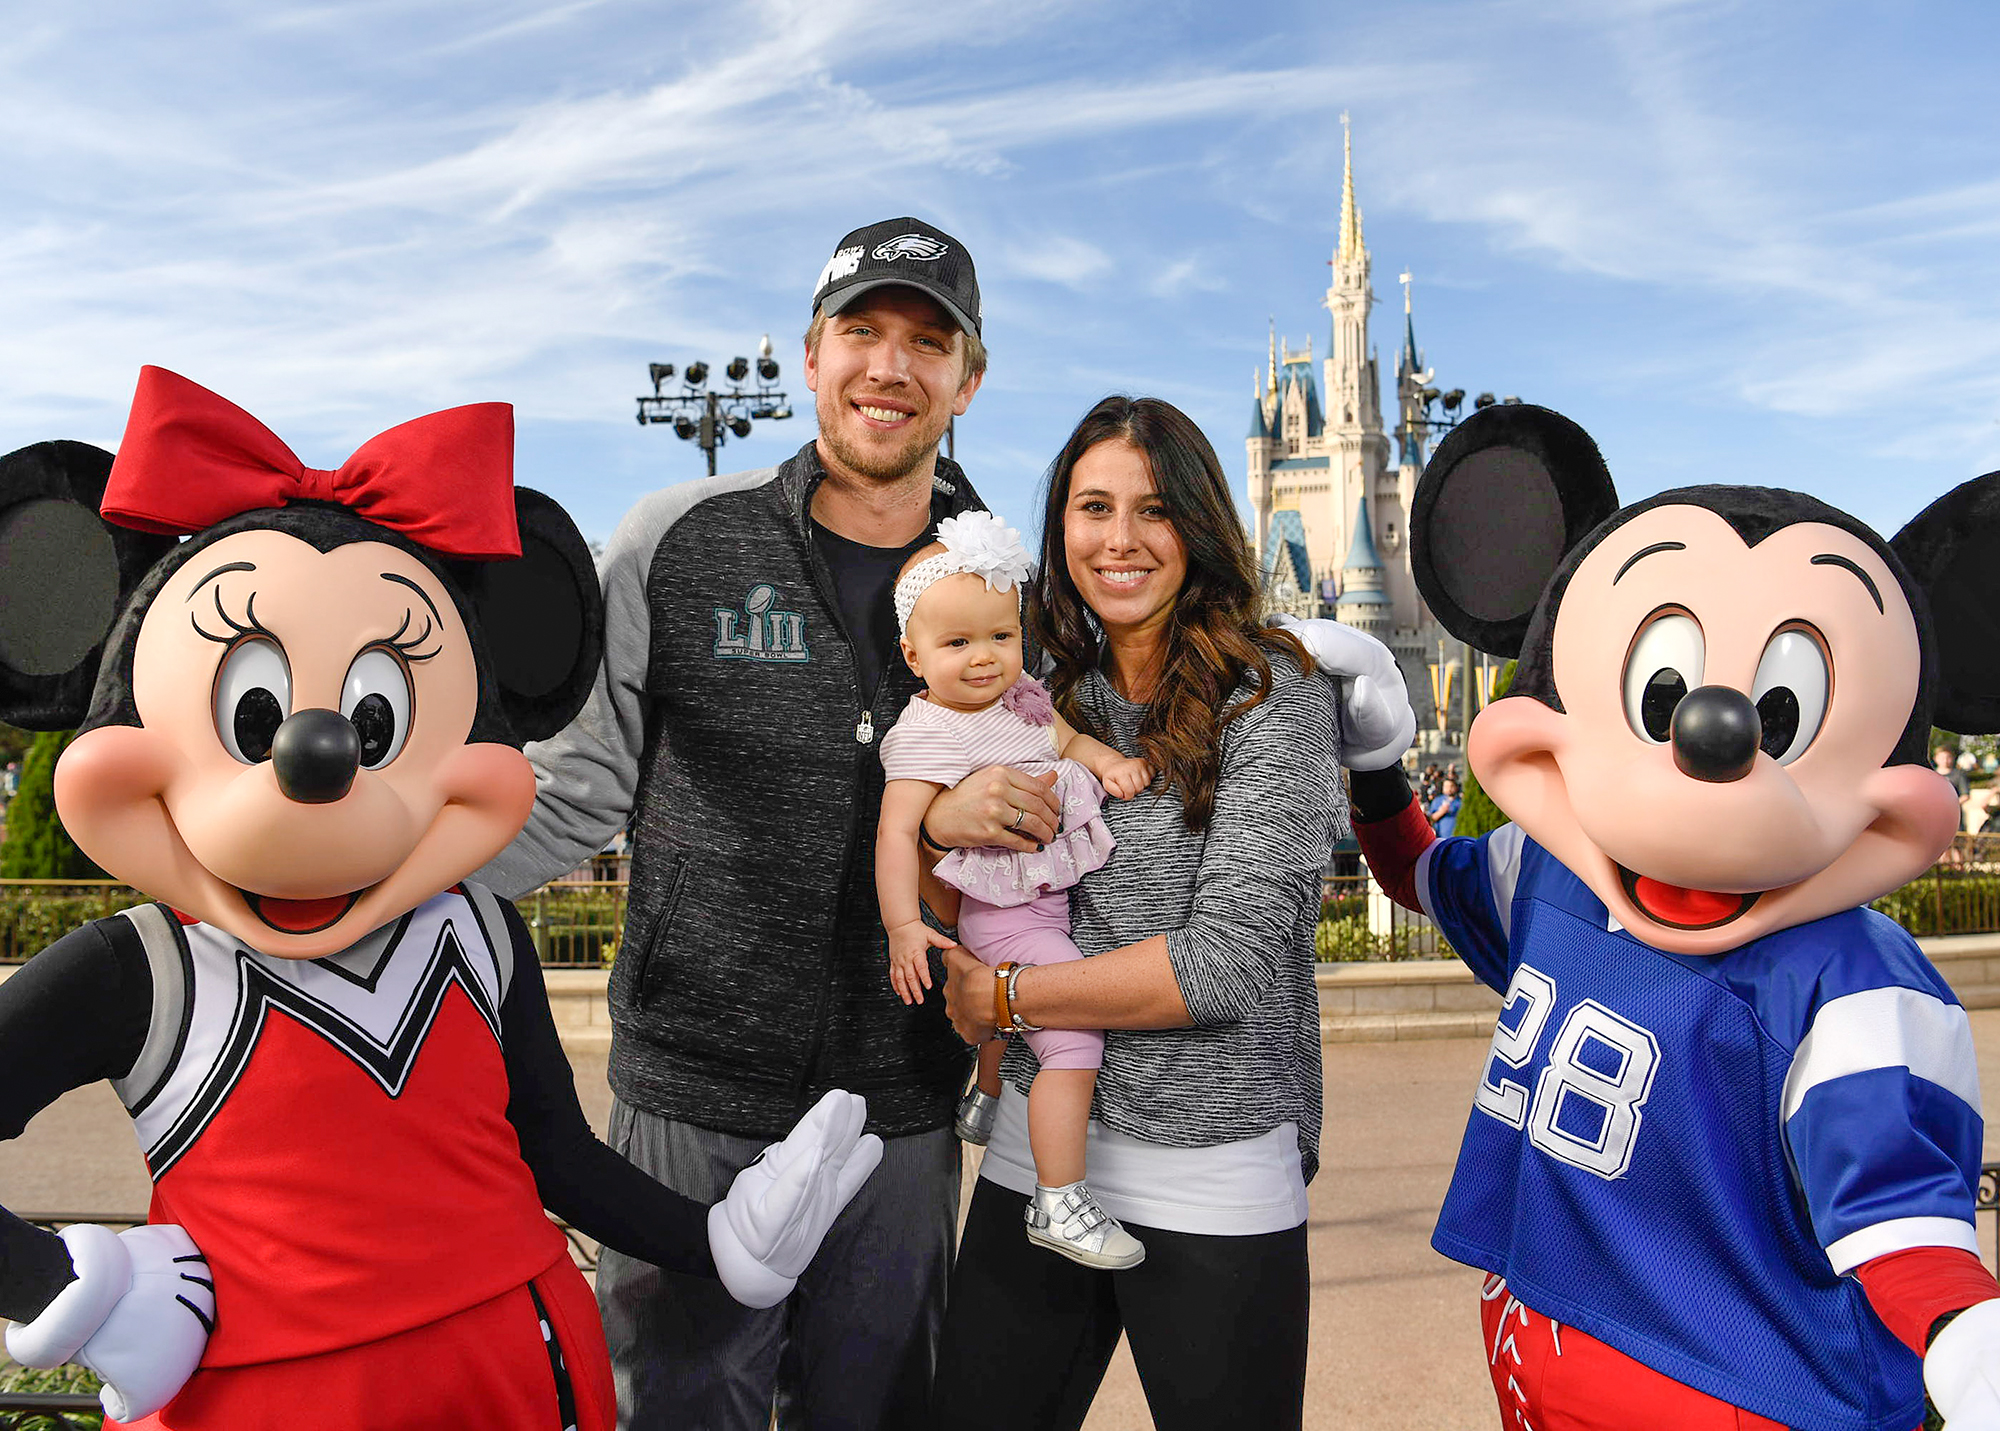 Nick Foles of The Philadelphia Eagles Celebrates at Walt Disney World